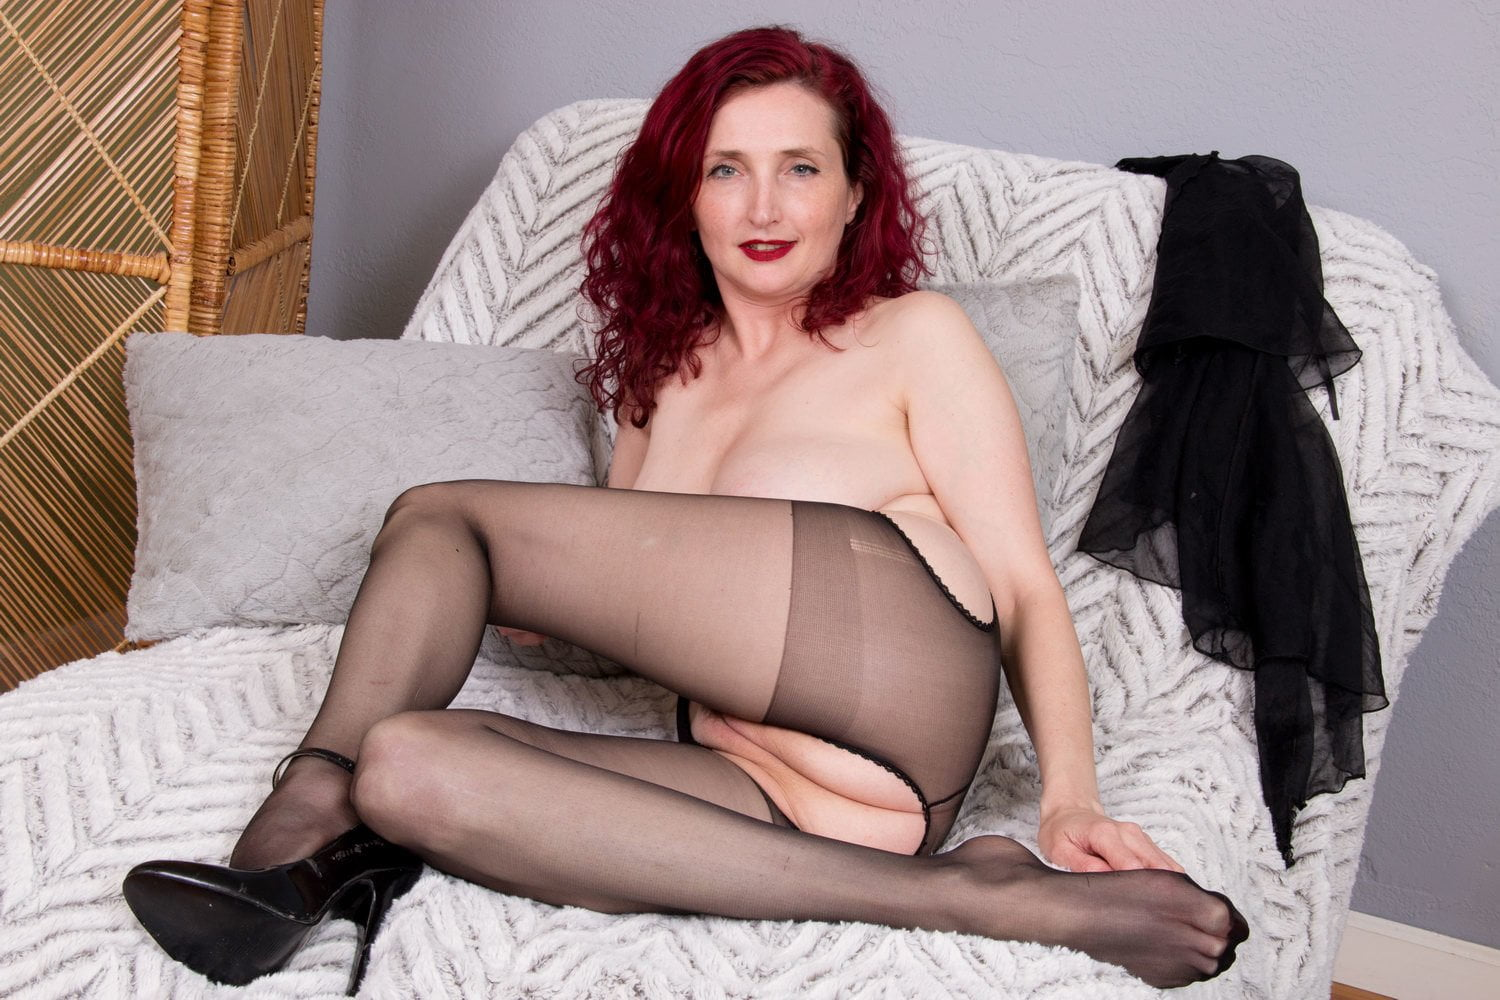 And the blue stockings milf sorry